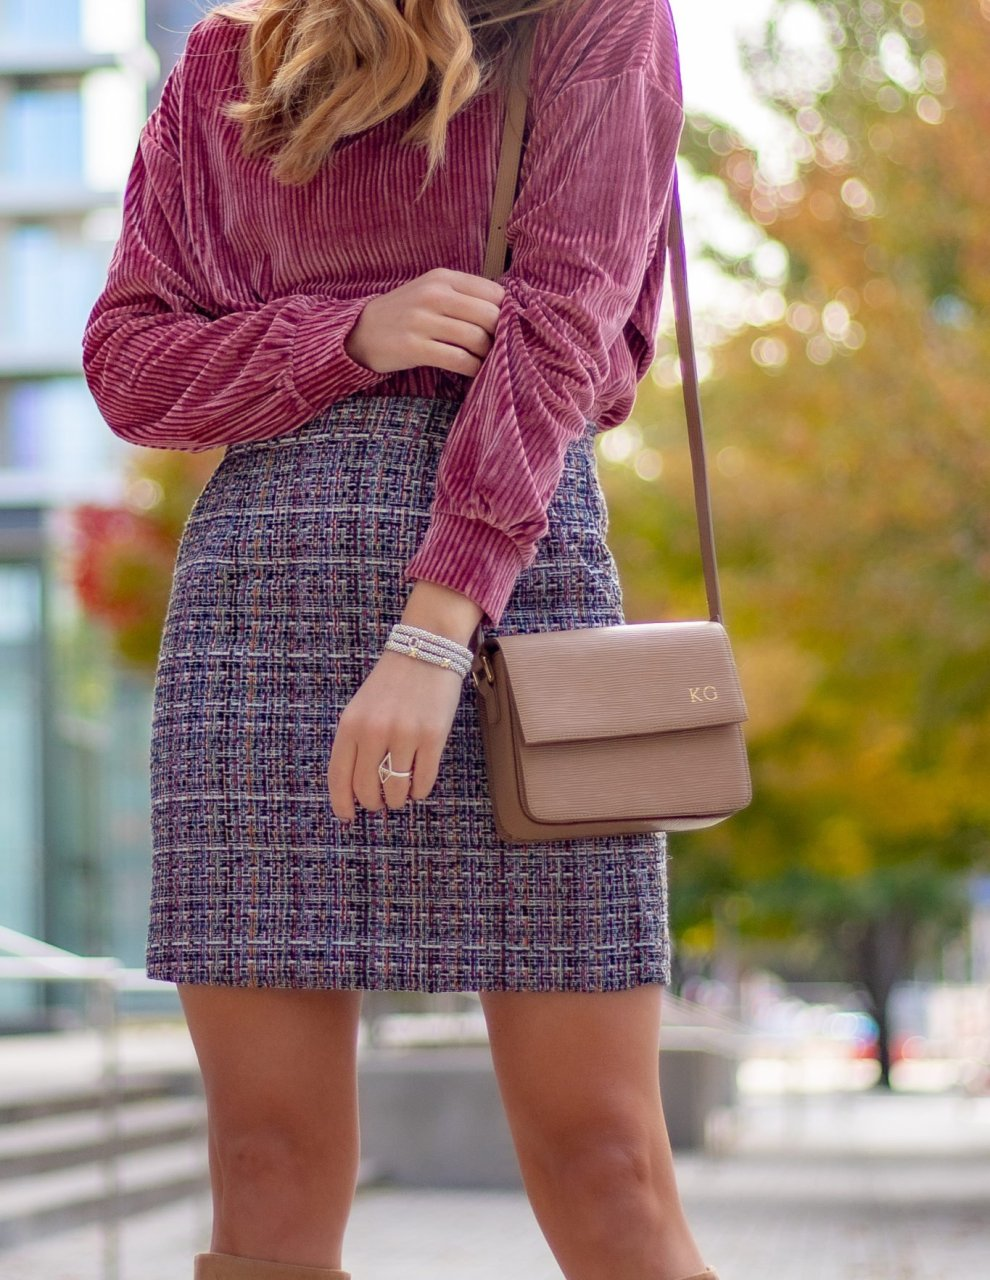 Honest Truth About Full Time Blogging and going back to work, thoughts featured by top US life and style blogger and influencer Kasey of Running in Heels.